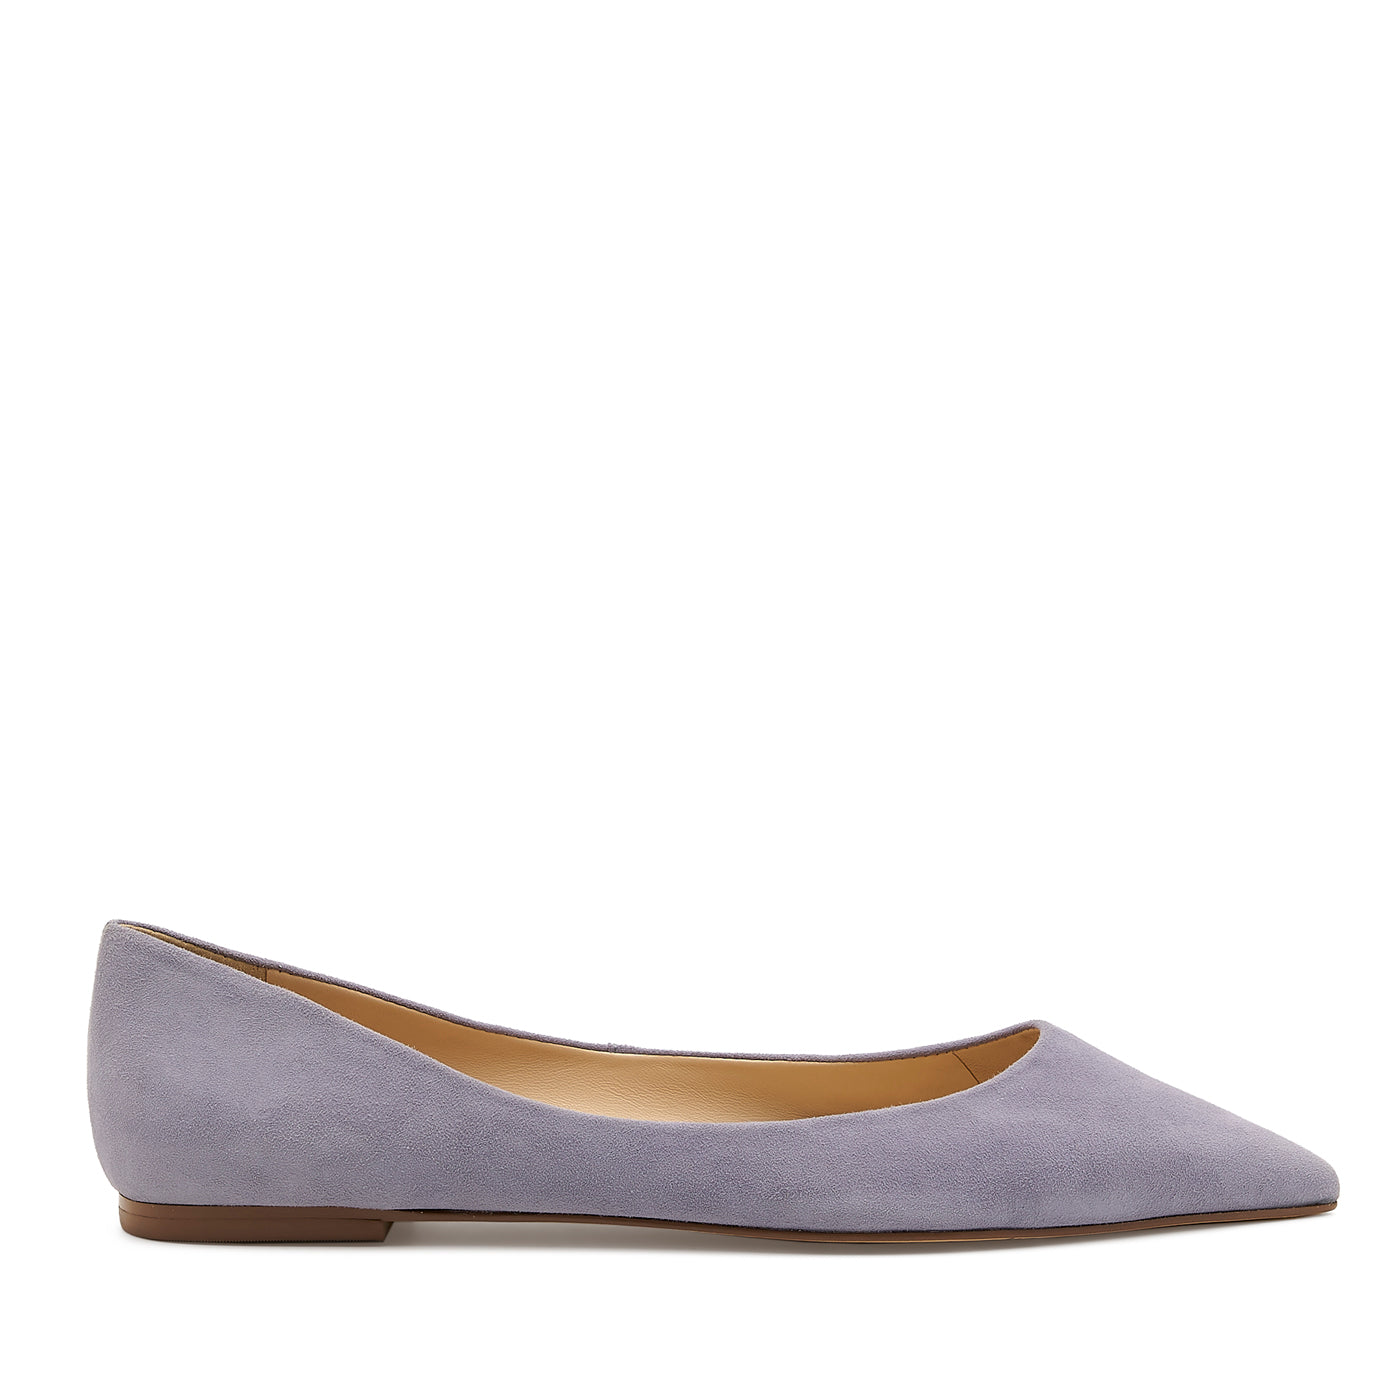 botkier annika pointed toe flat in purple haze